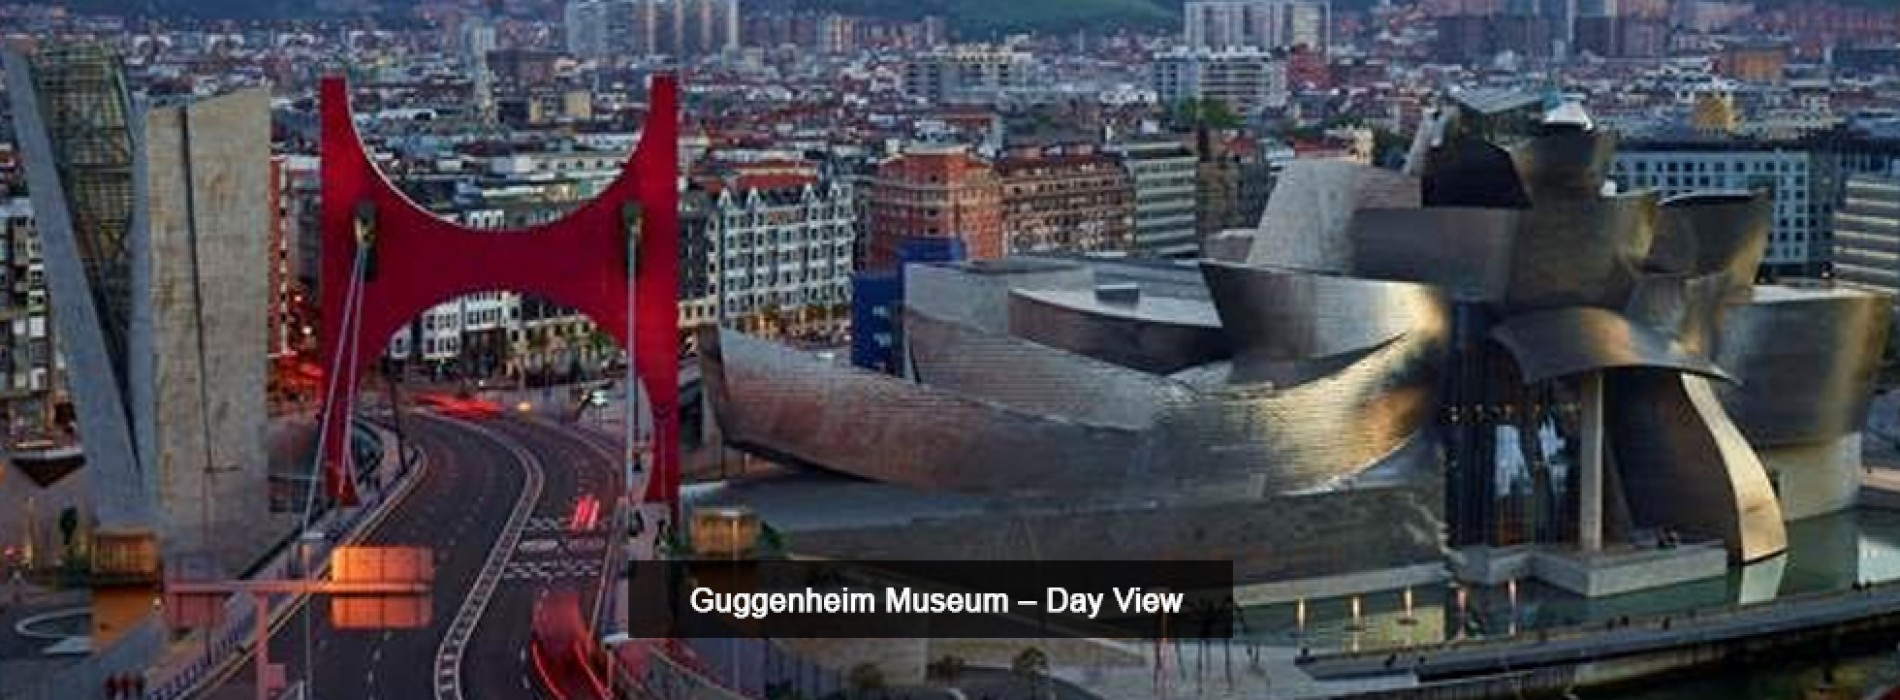 Spain celebrates 20th anniversary of Guggenheim Museum, Bilbao